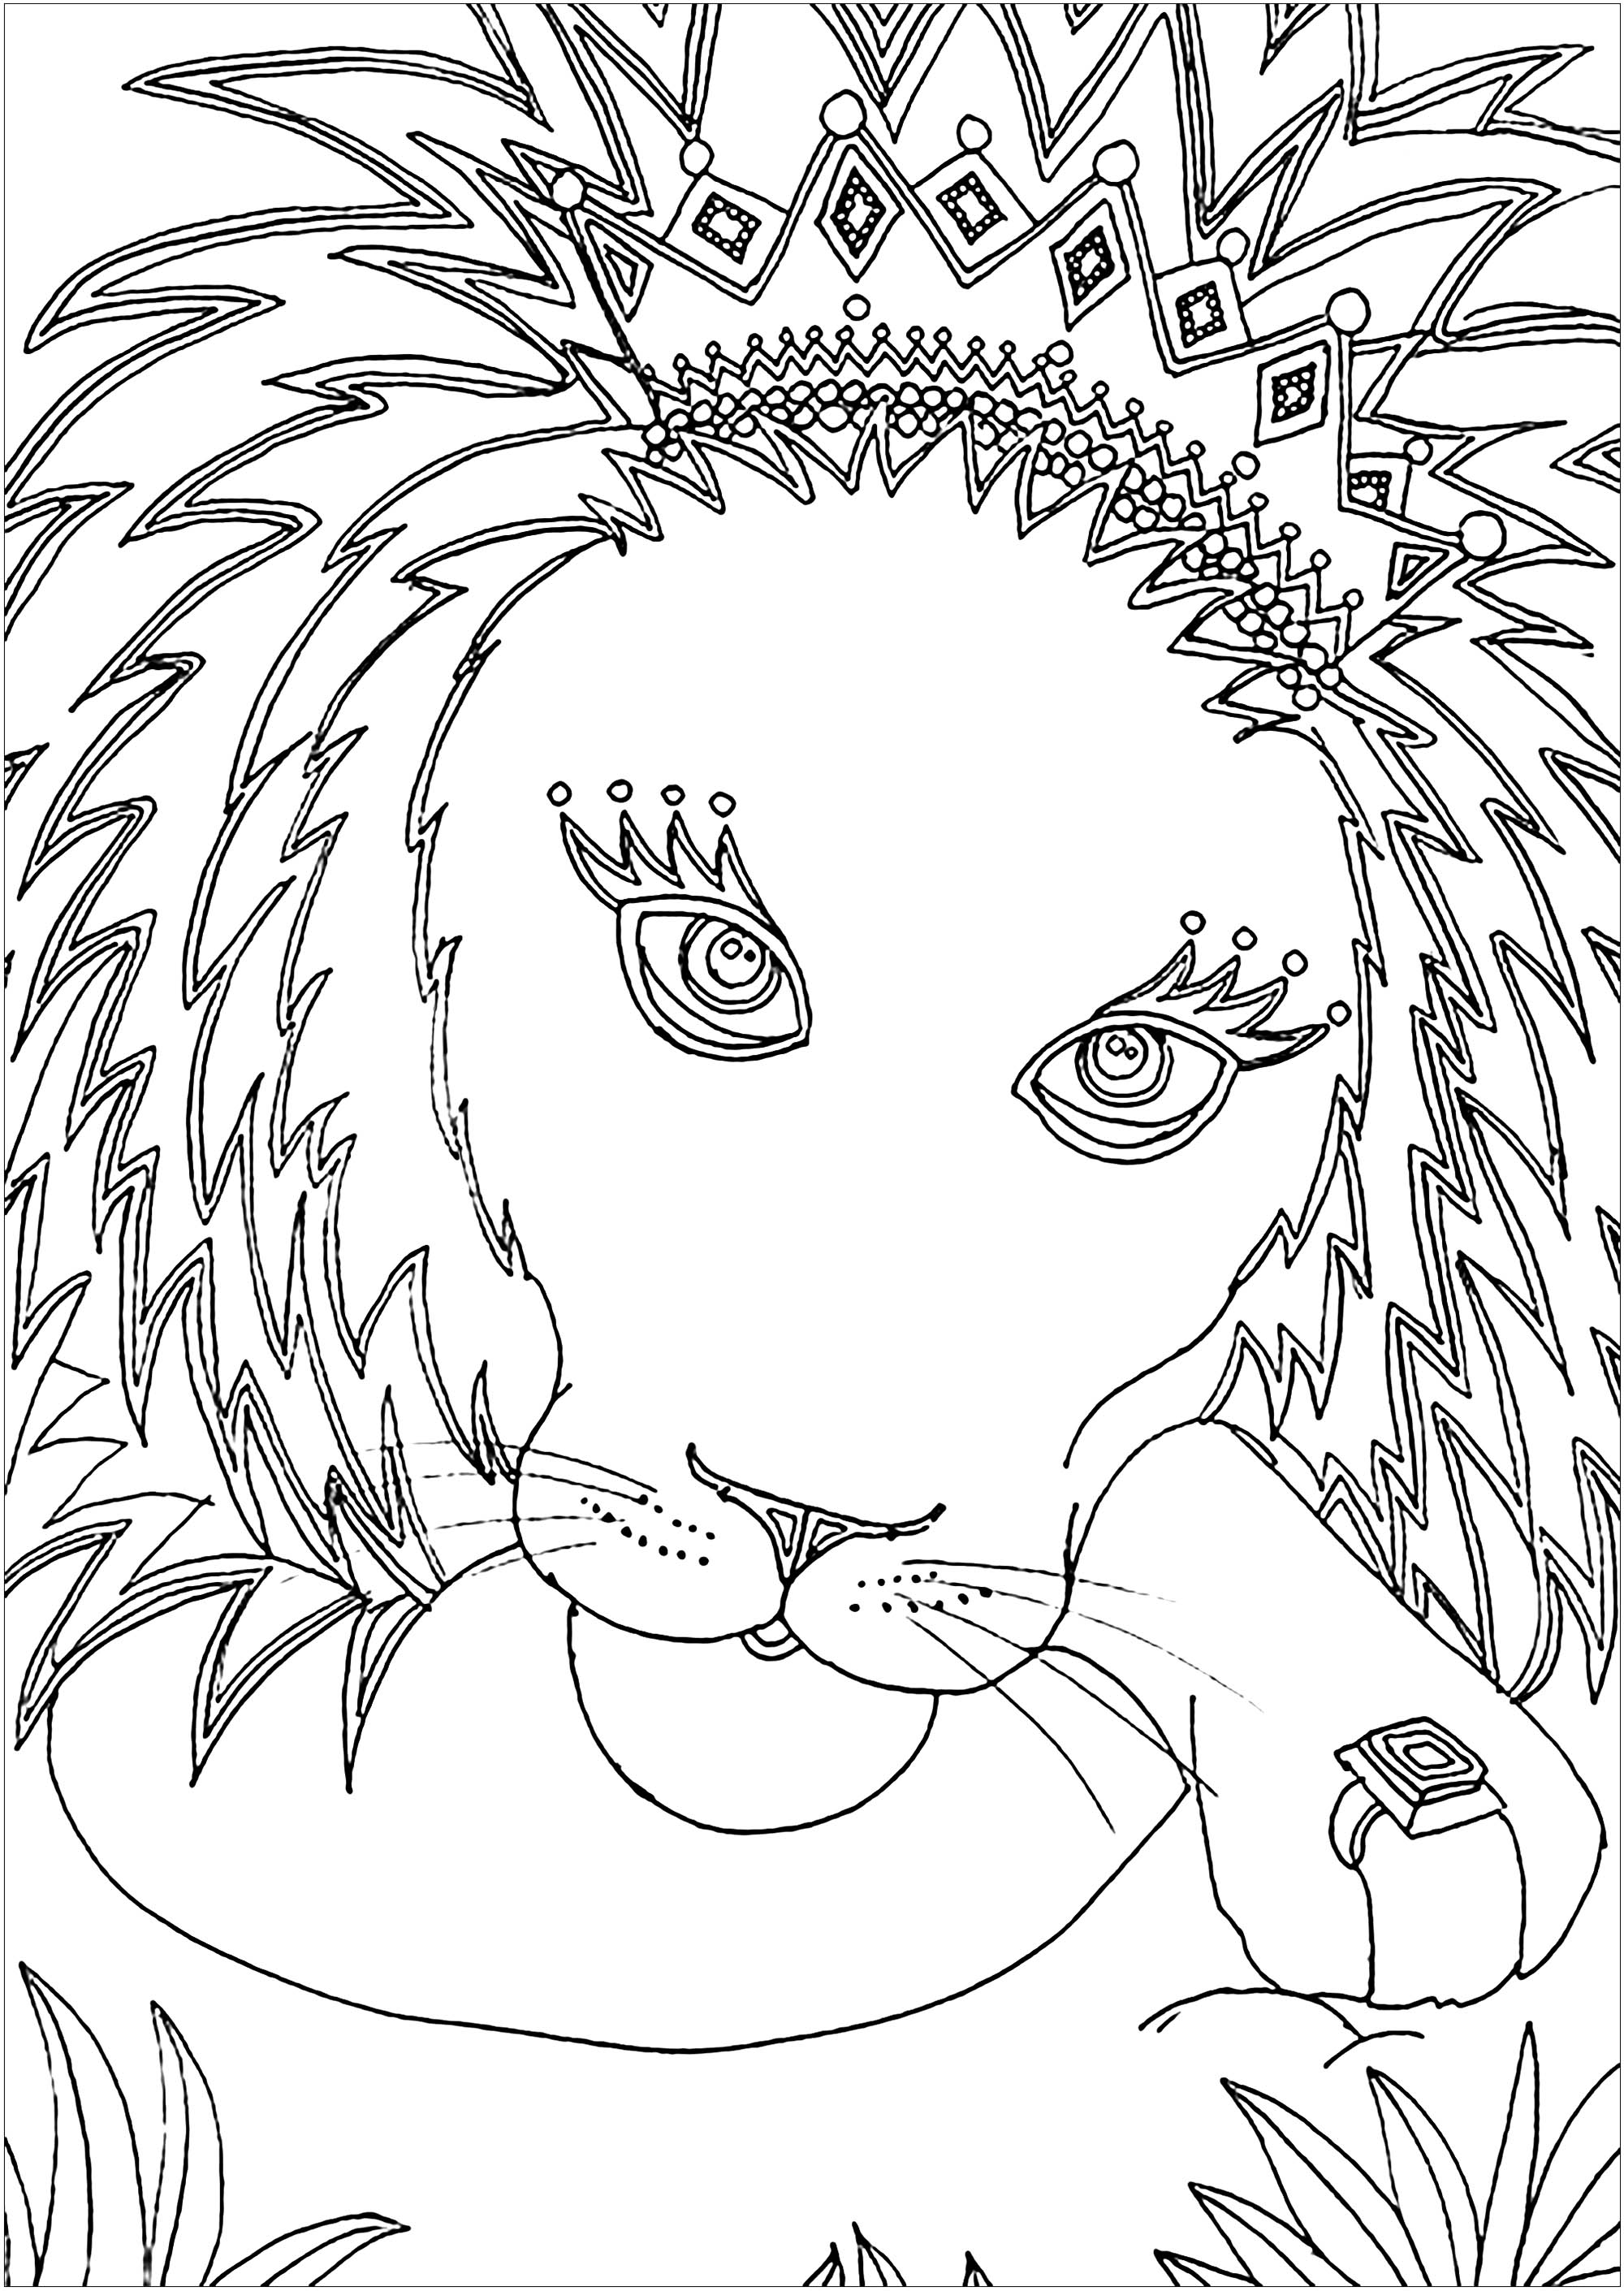 Cute free Lion coloring page to download